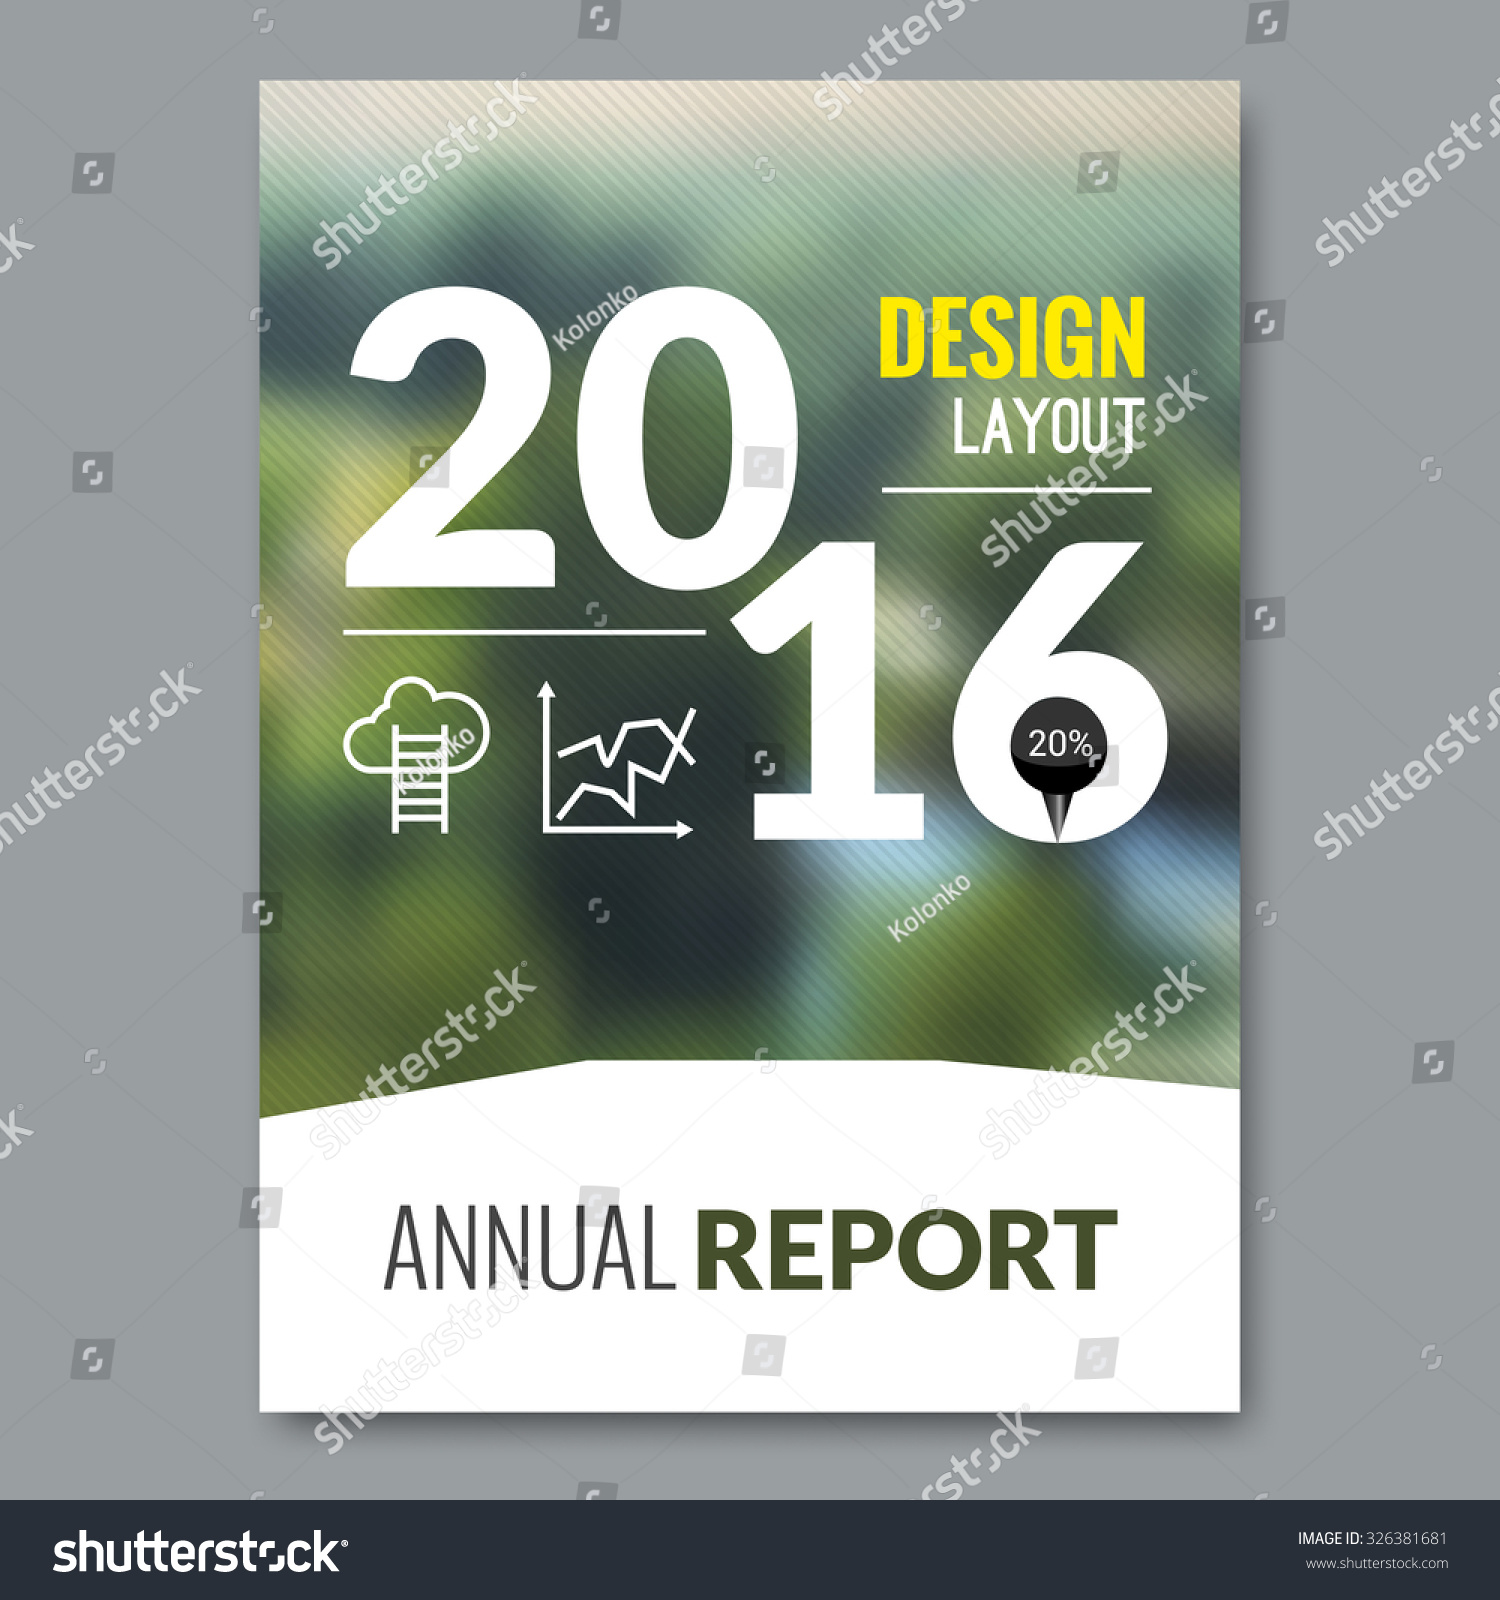 cover magazine design template beautiful annual stock vector cover magazine design template beautiful annual report business design nature background vector illustration